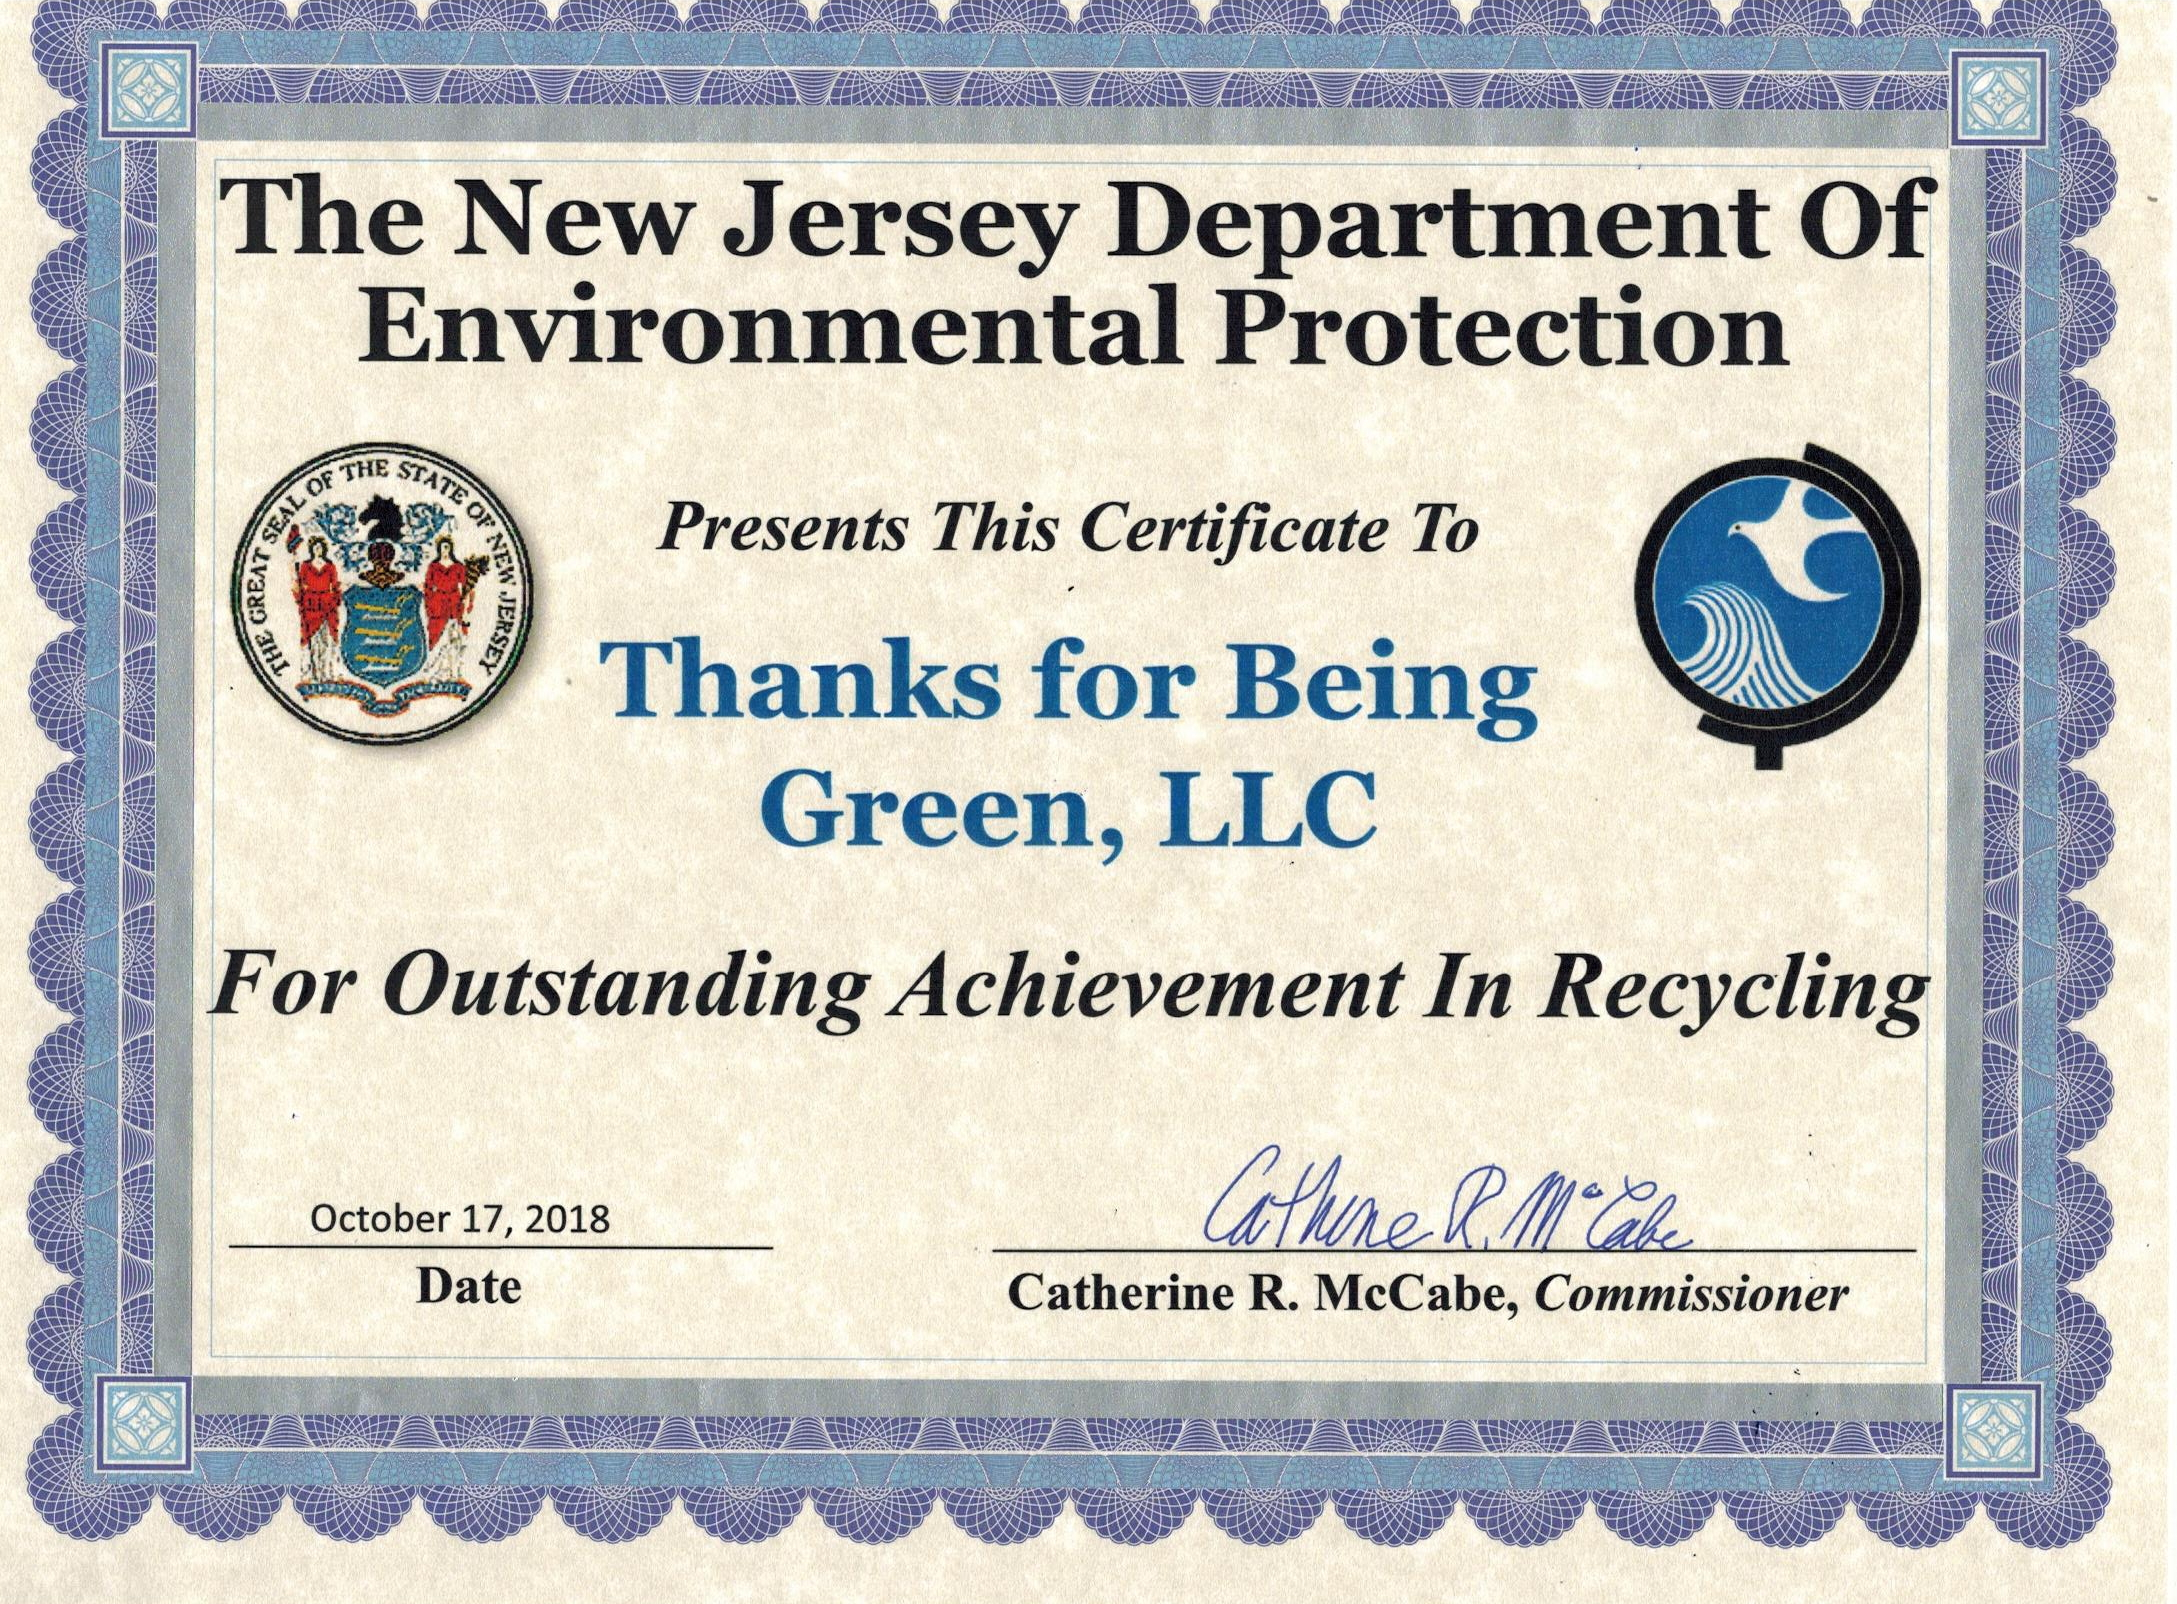 Magnum Recognized By NJ Department of Environmental Protection